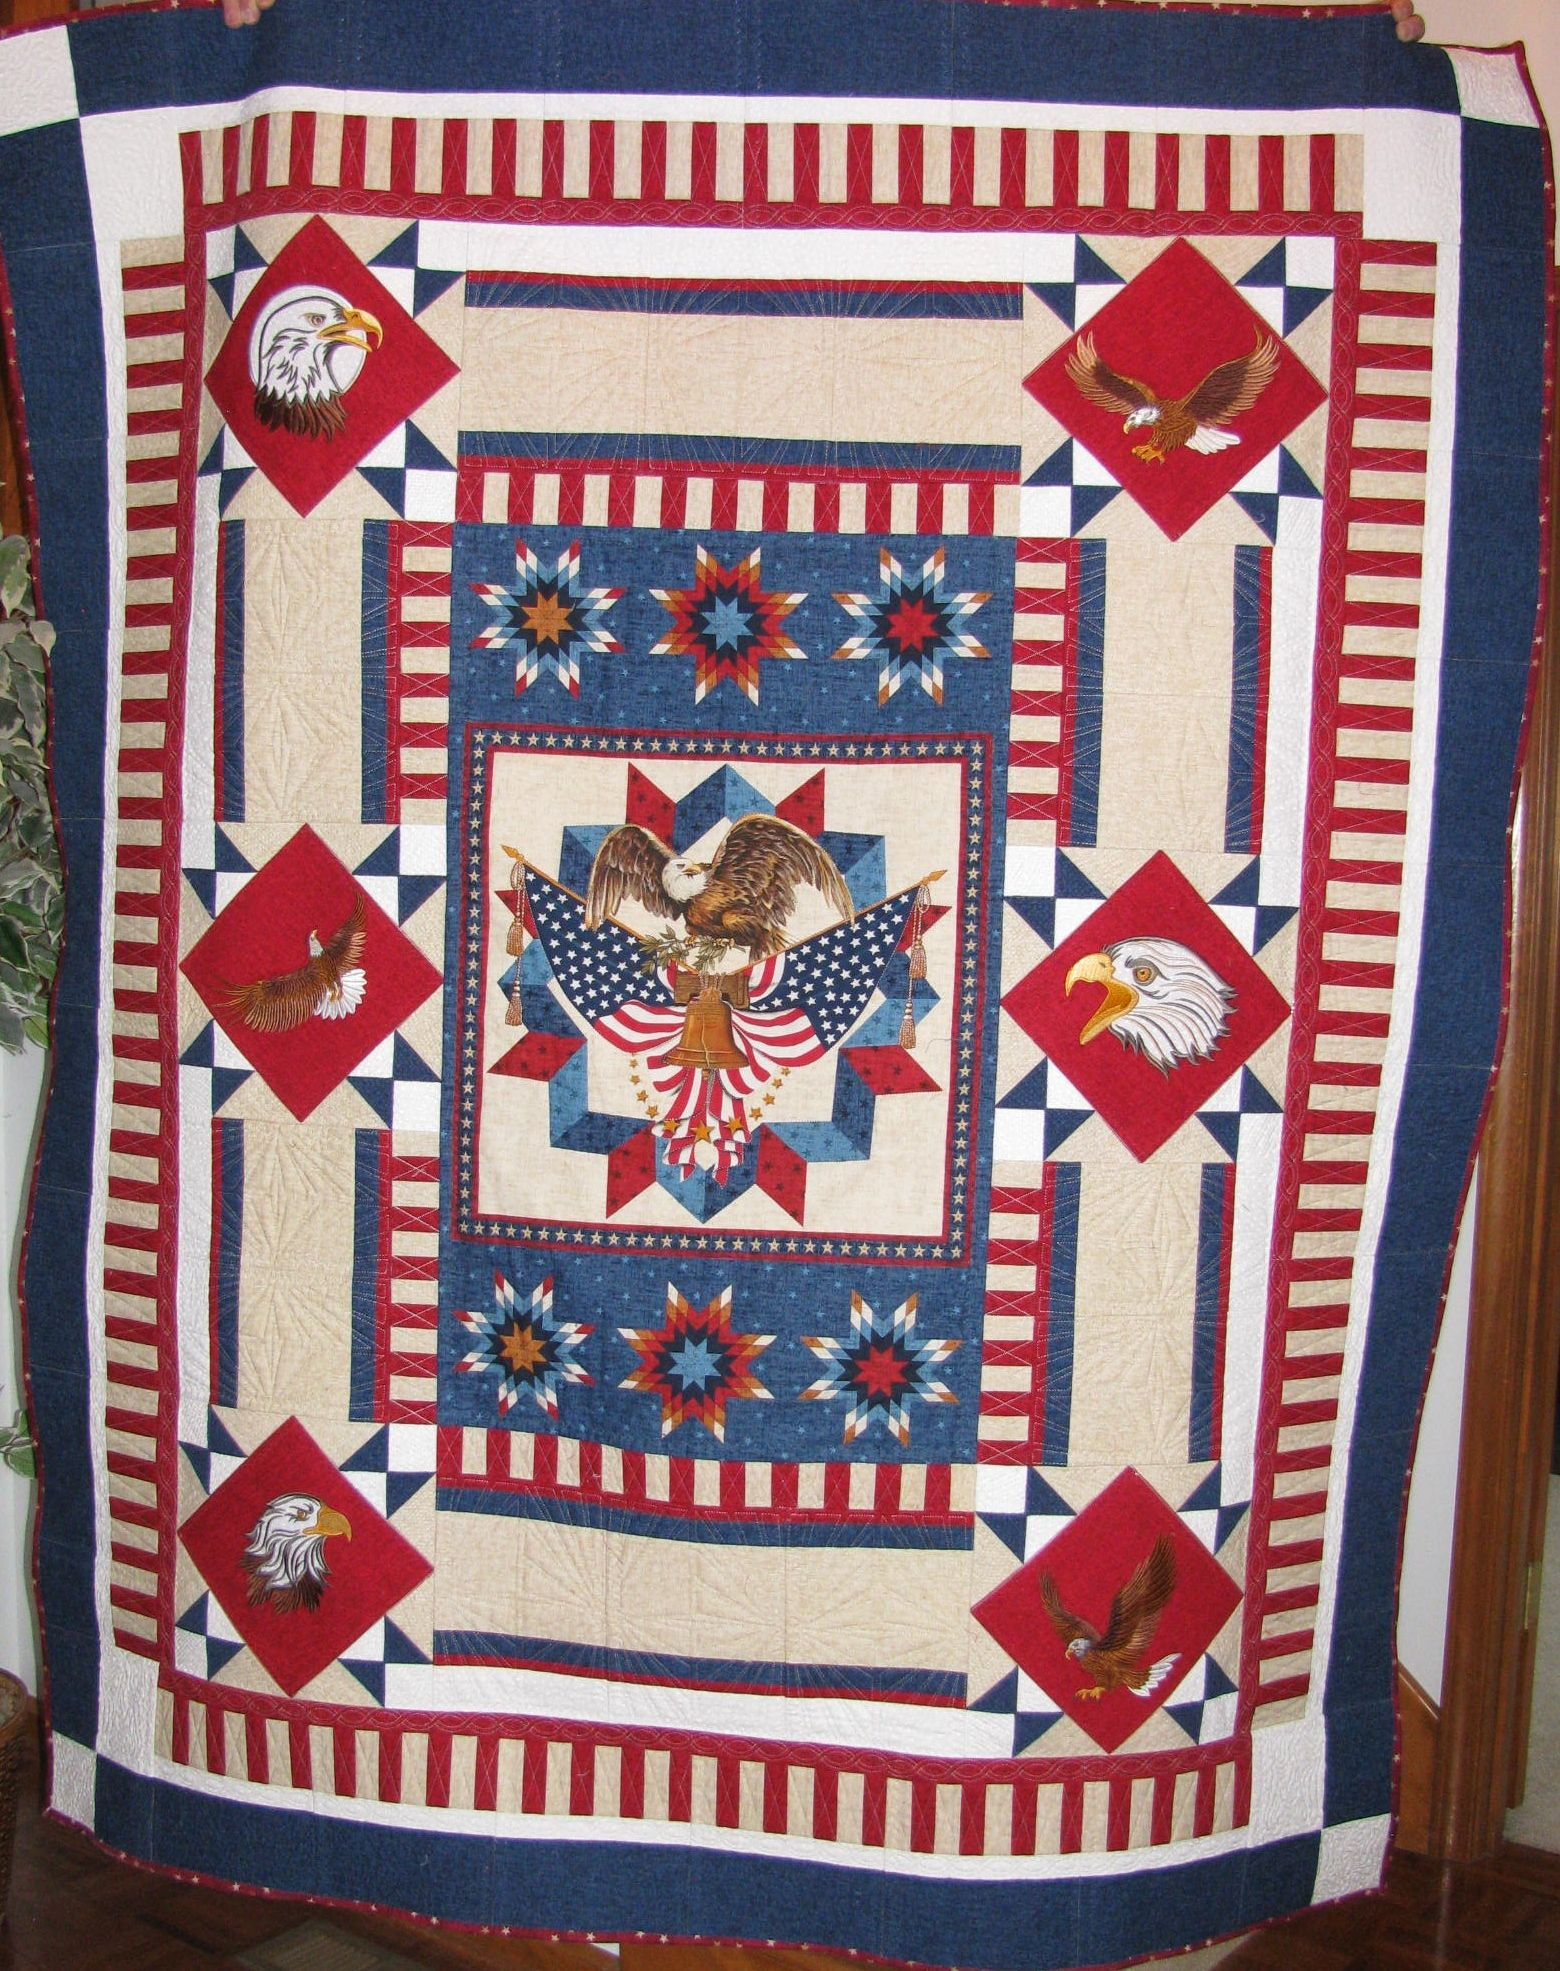 I made this quilt for a Viet Nam veteran.  He said he'd never received anything from anyone before.